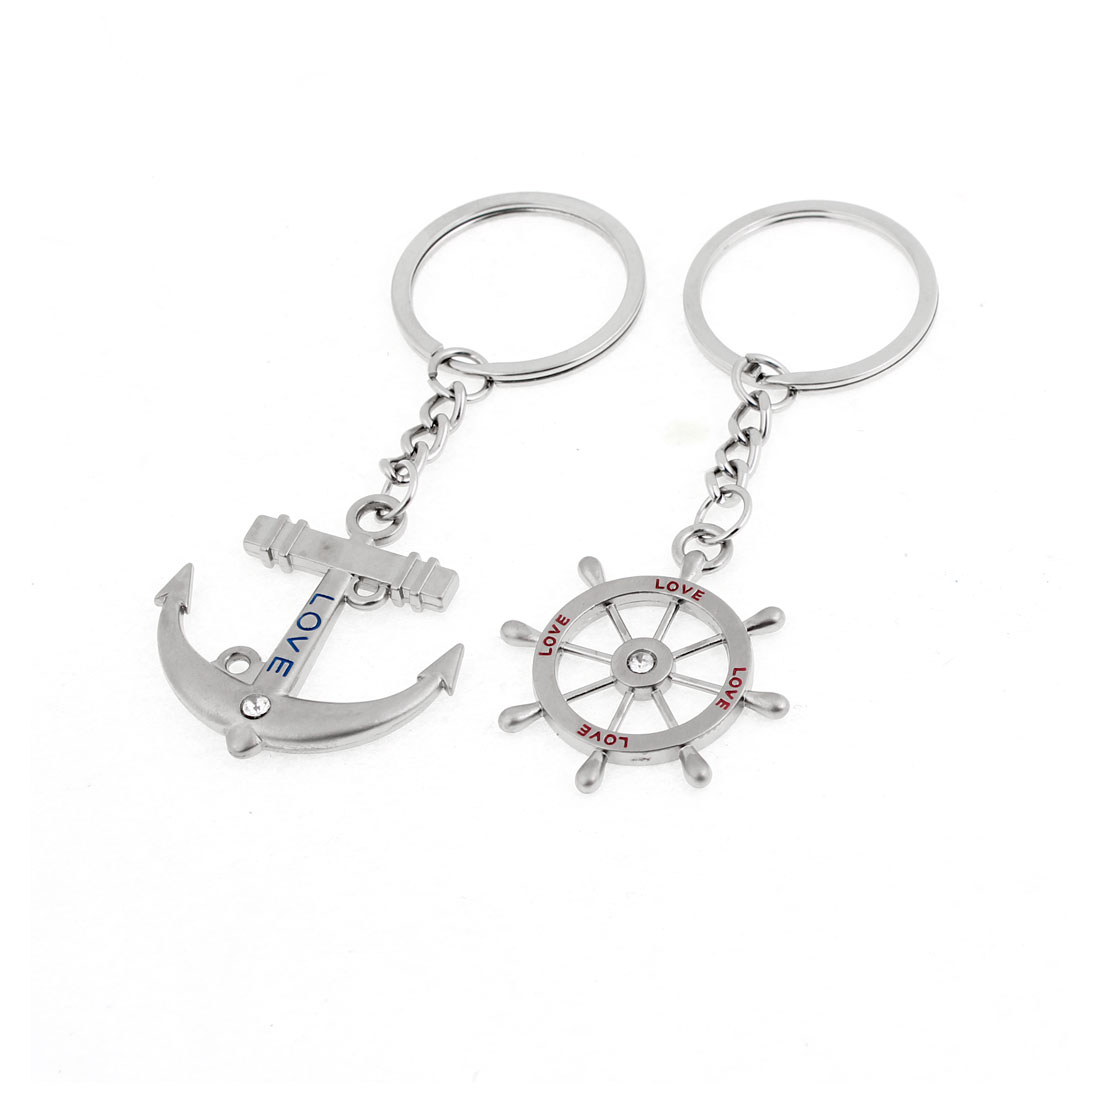 Couple Silver Tone Metal Love Print Rudder Anchor Shape Keyring Key Chain